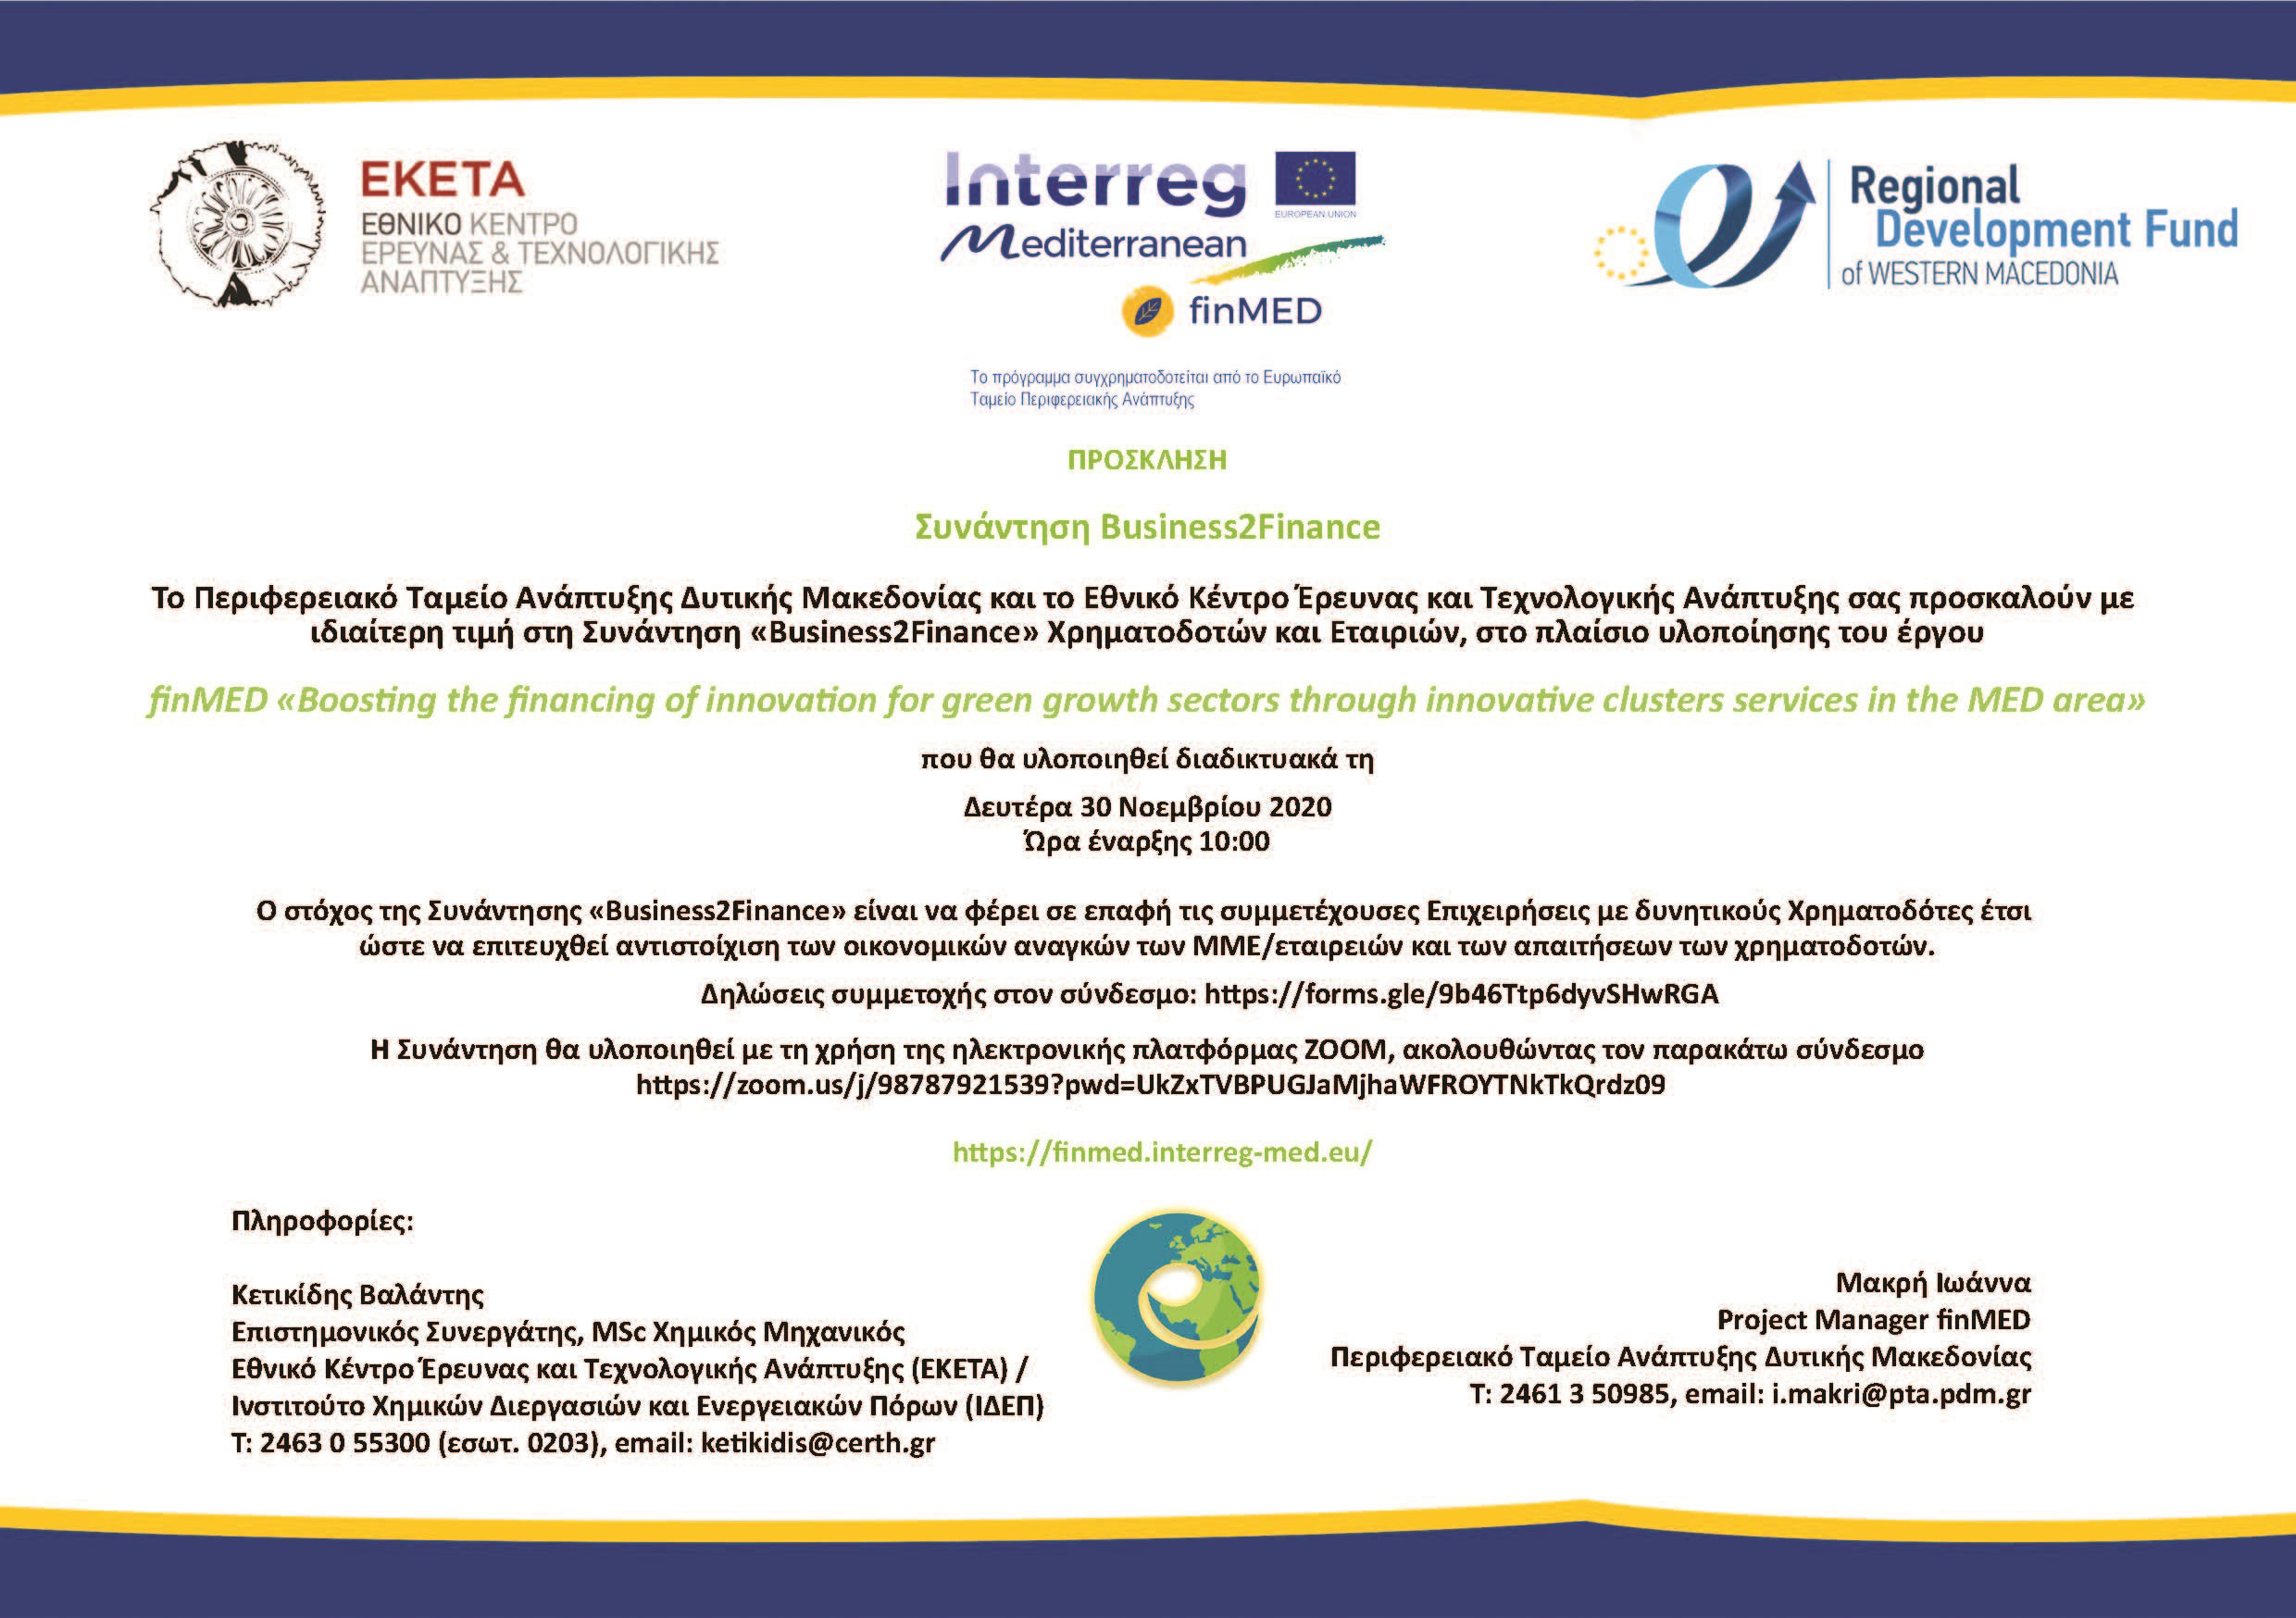 finMED Boosting the financing of innovation for green growth sectors through innovative clusters services in the MED area: Διαδικτυακή Συνάντηση Business2Finance (Δευτέρα 30 Νοεμβρίου 2020 Ώρα έναρξης 10:00)